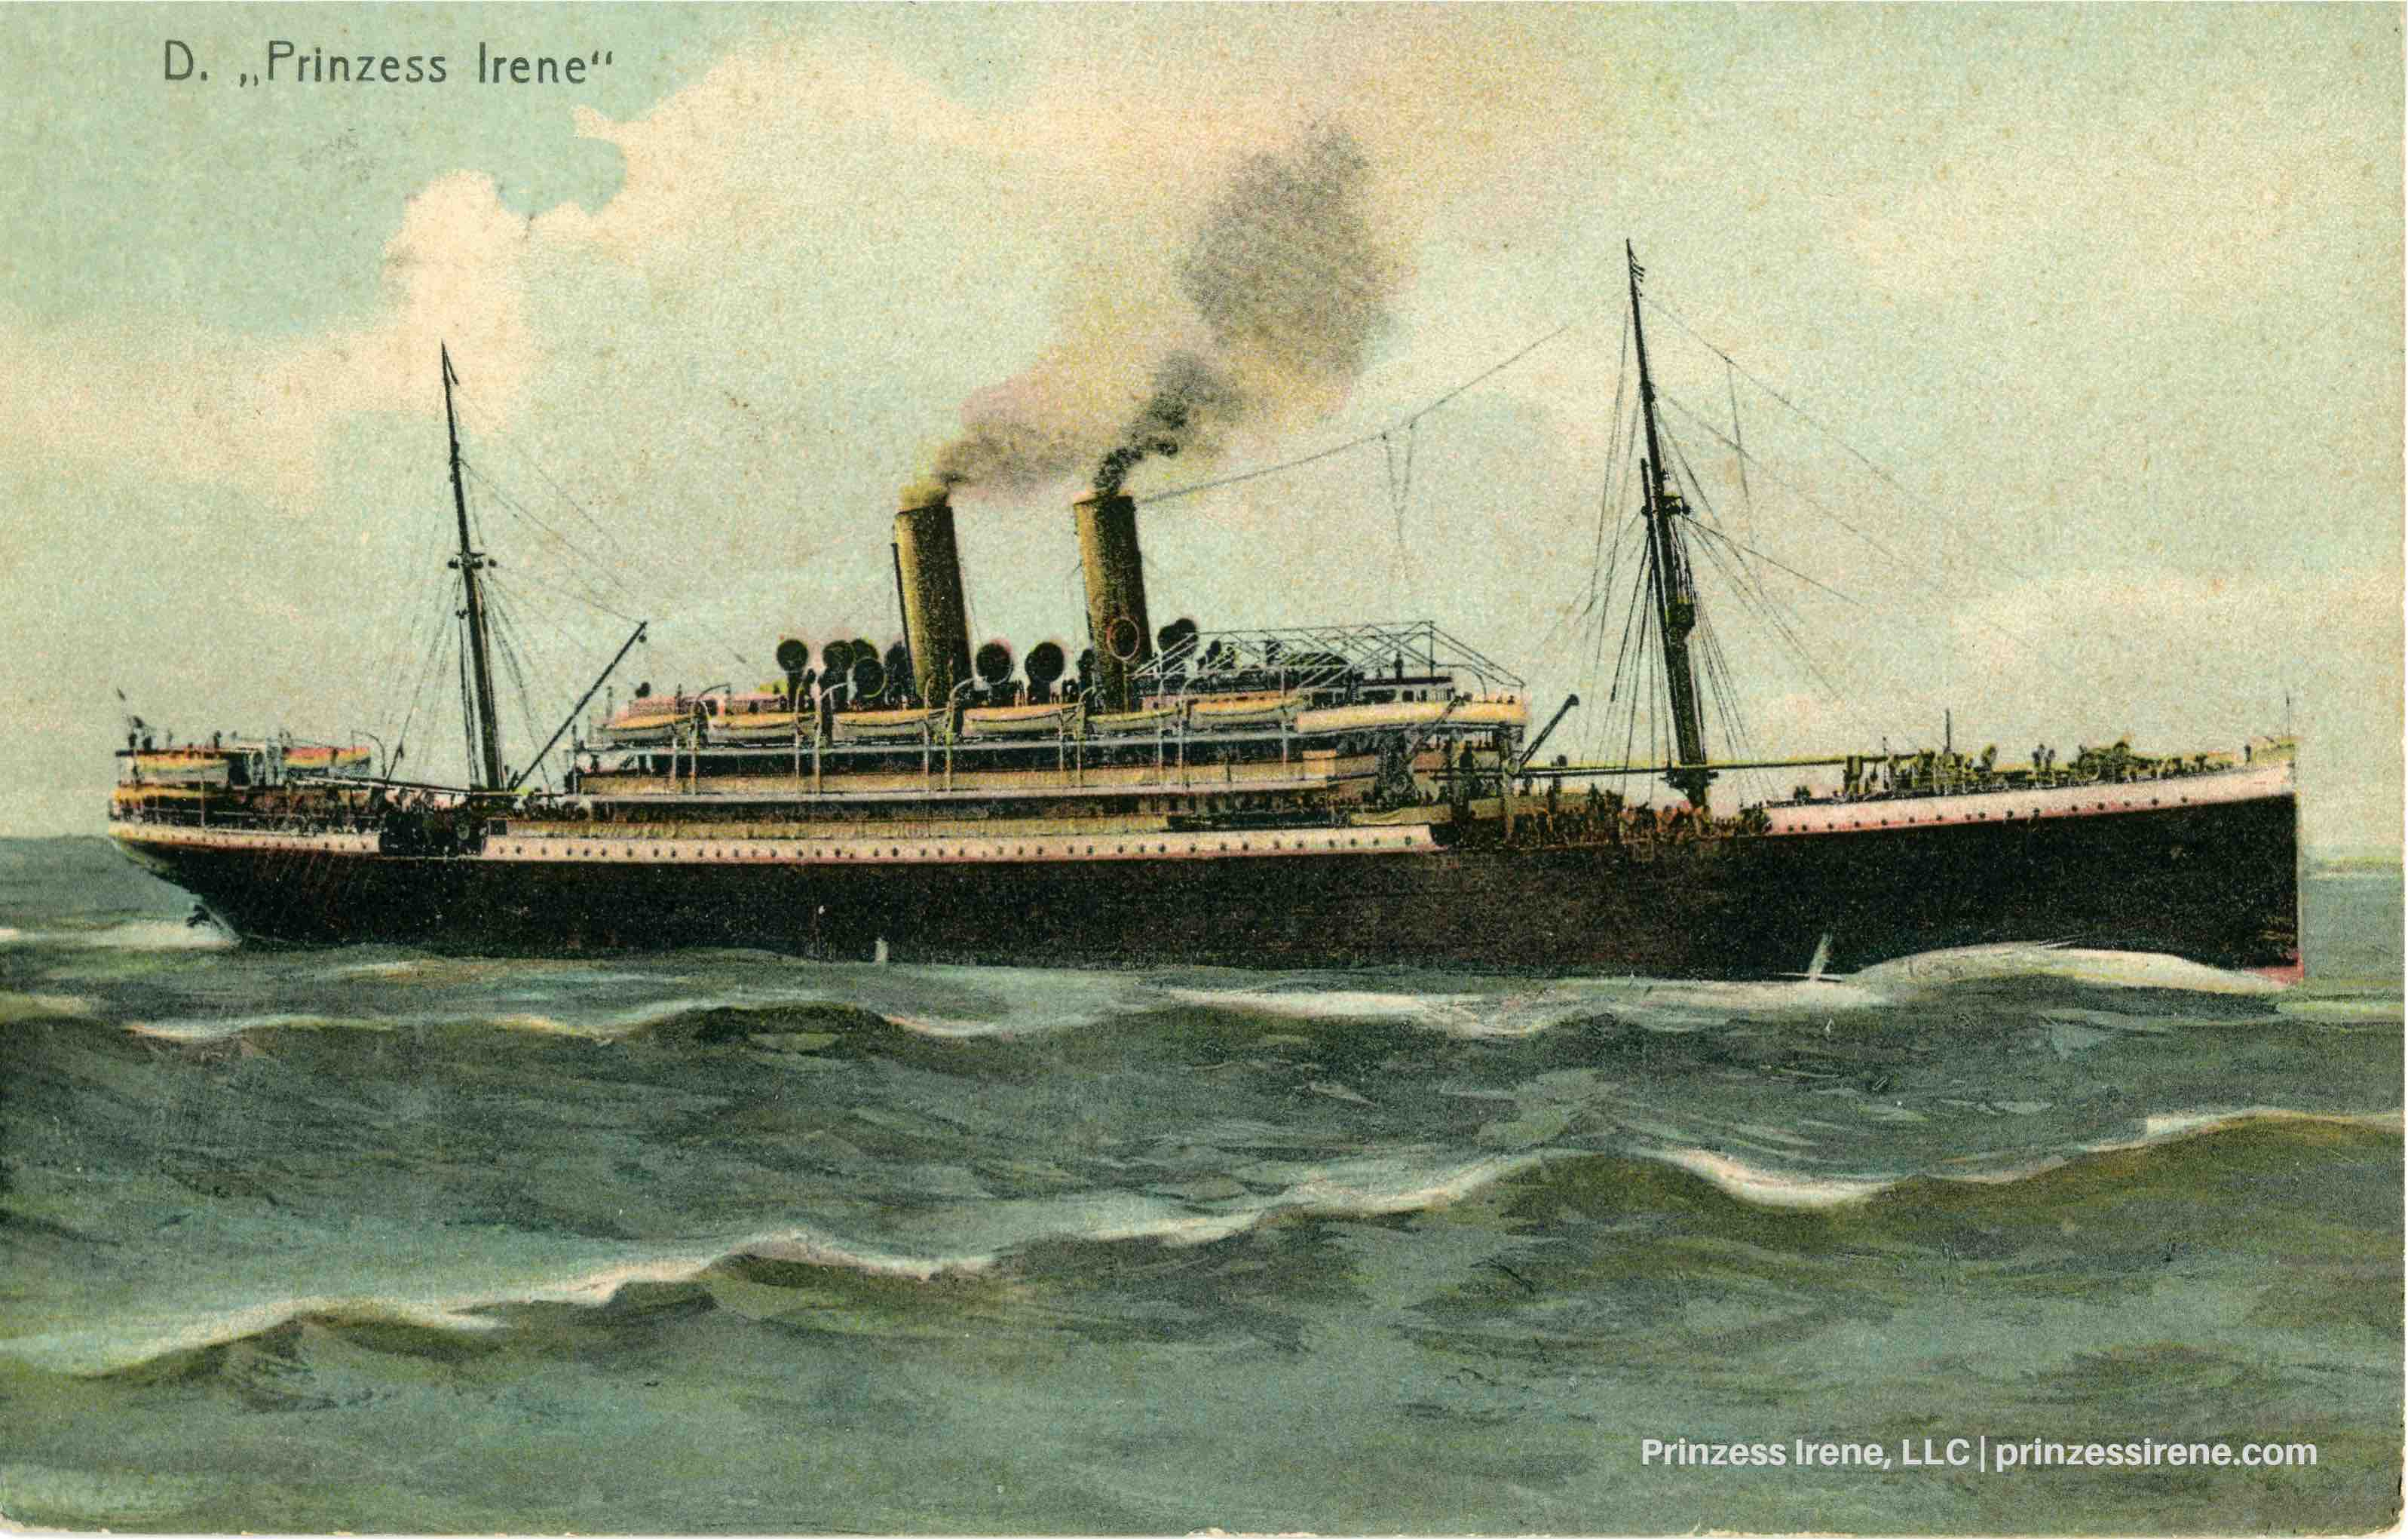 Prinzess Irene. Postcard, dated July 7, 1904.